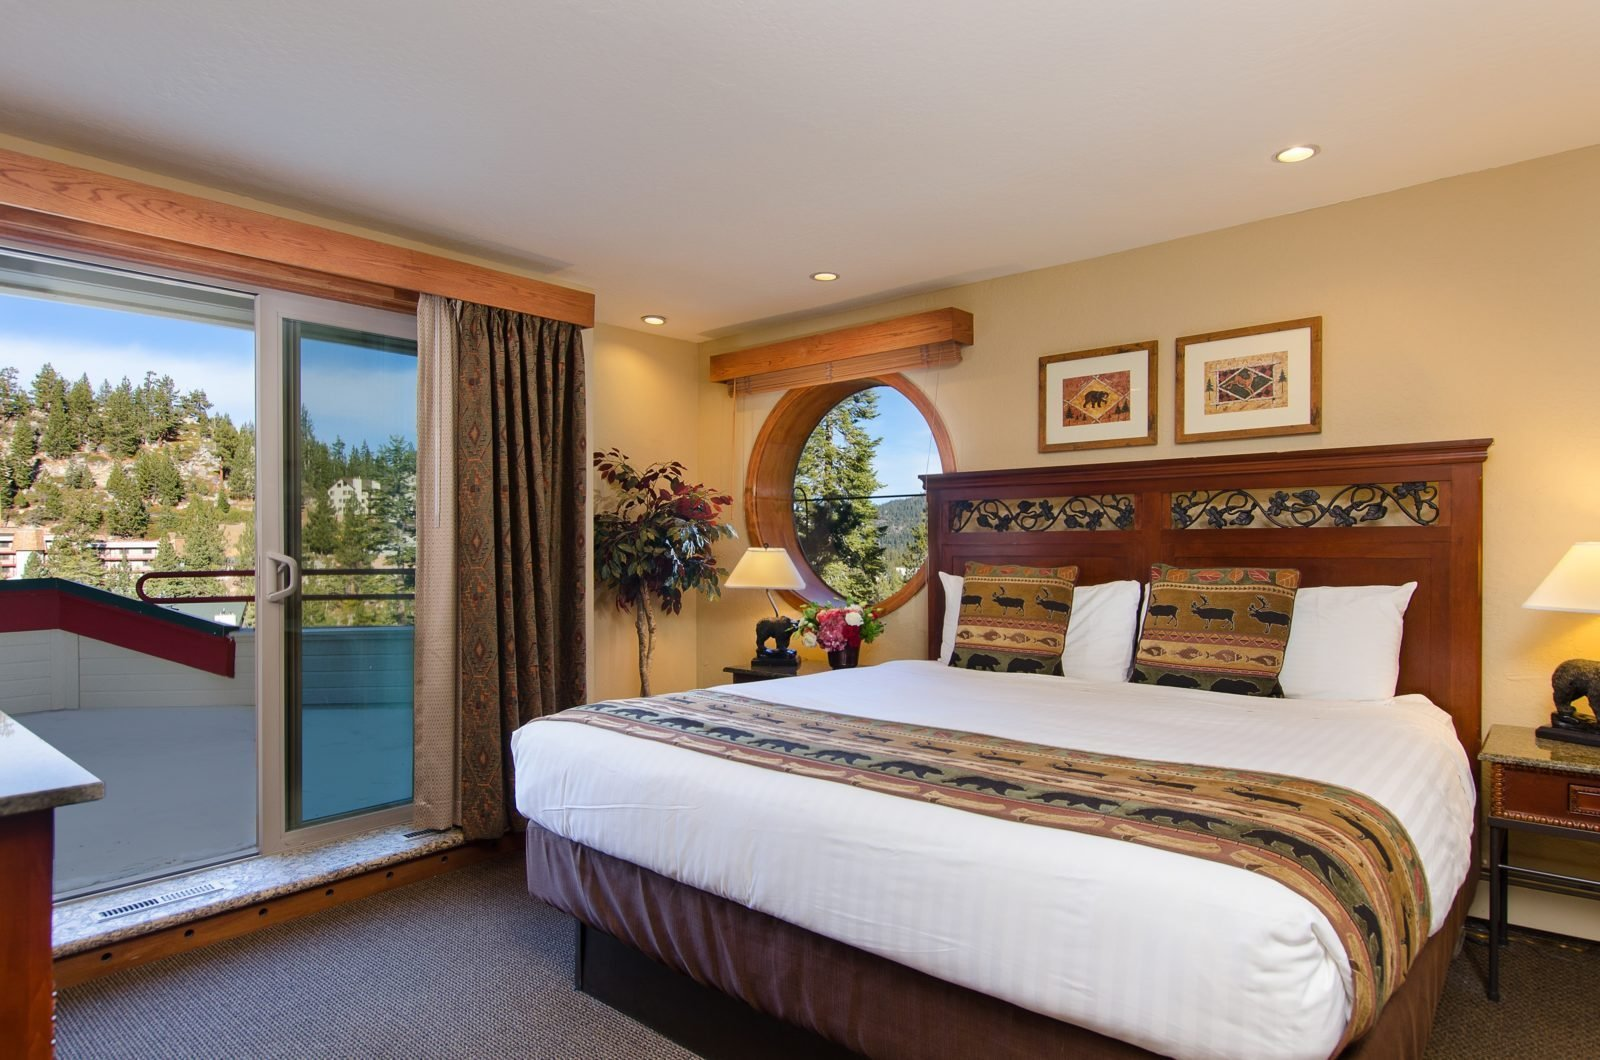 Best Lake Tahoe Lodging Options Rooms And Suites At The Ridge With Pictures